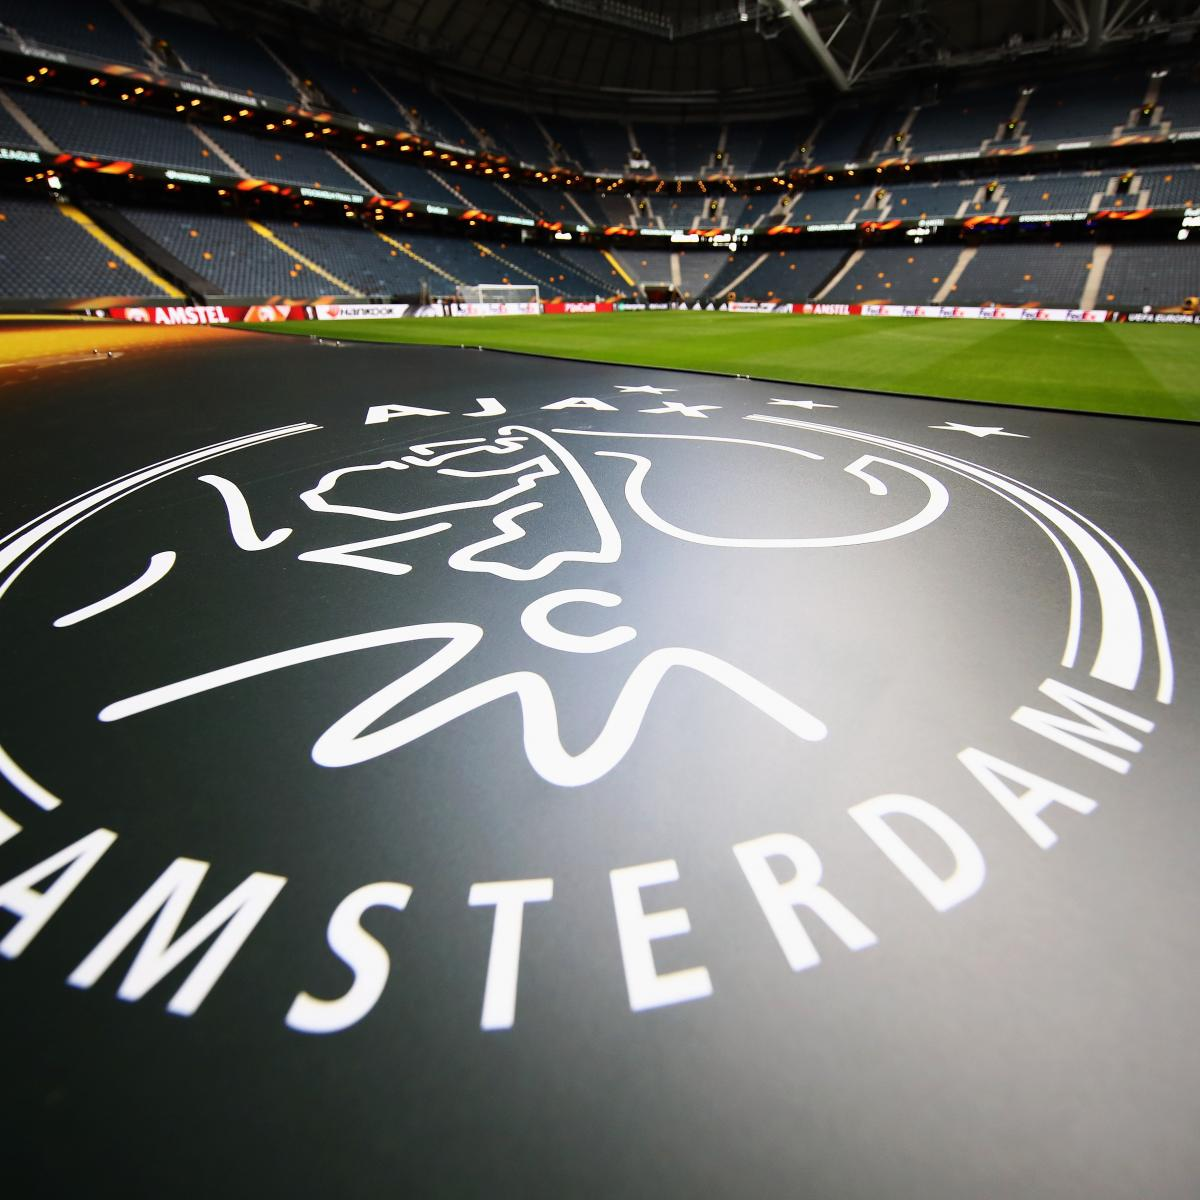 Ajax Fan Group Defends Assault On Reporter Before UCL Win